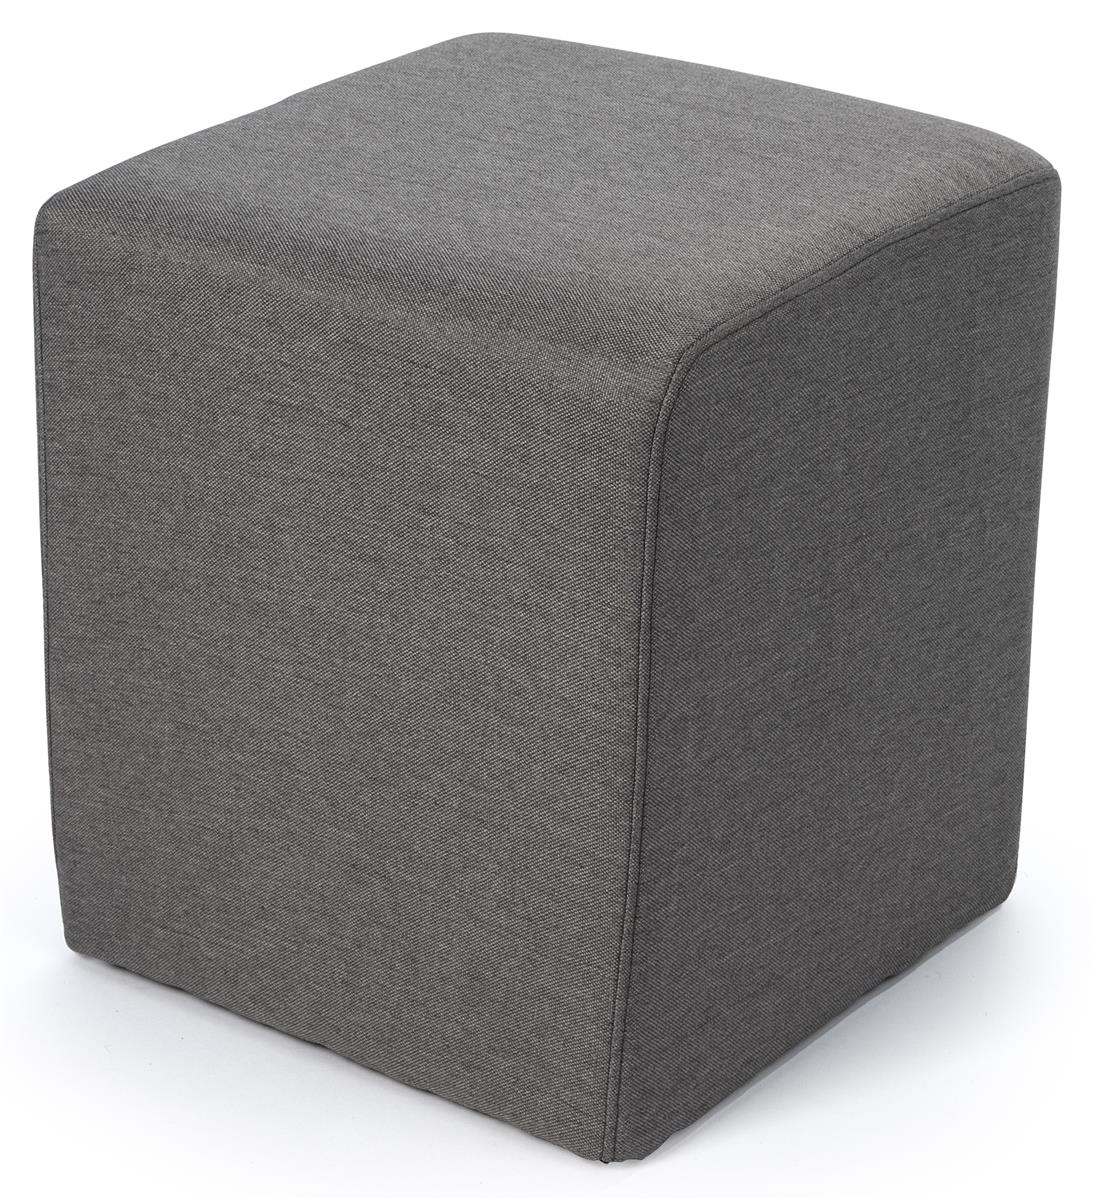 Cube Ottoman Seating Textured Gray Upholstery